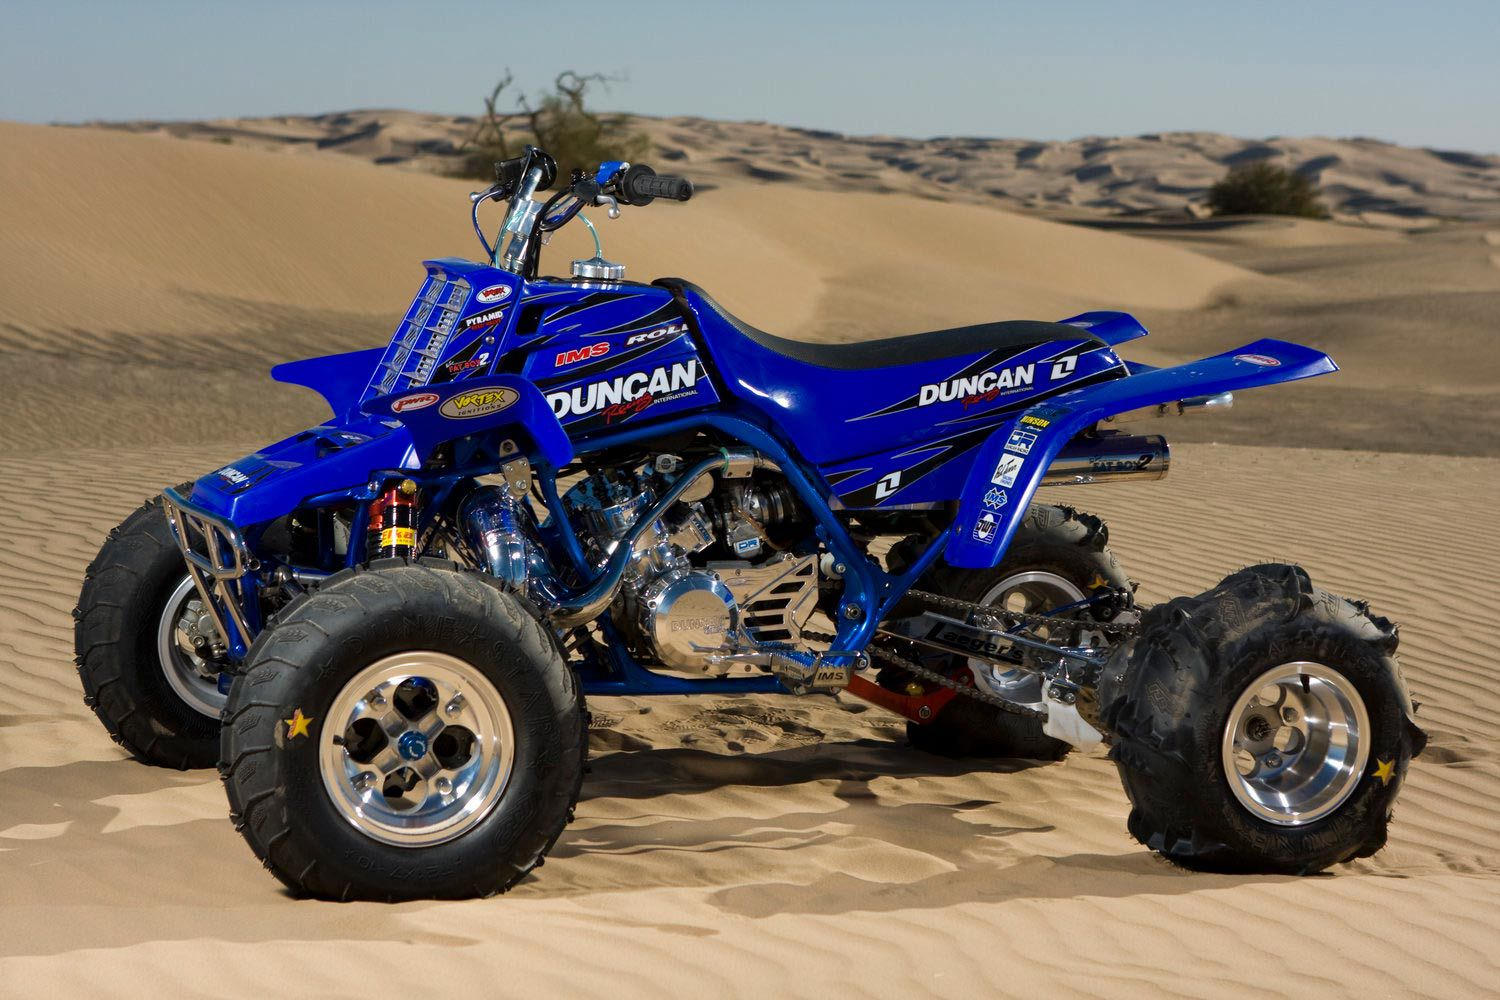 The aftermarket ATV parts business has exploded.